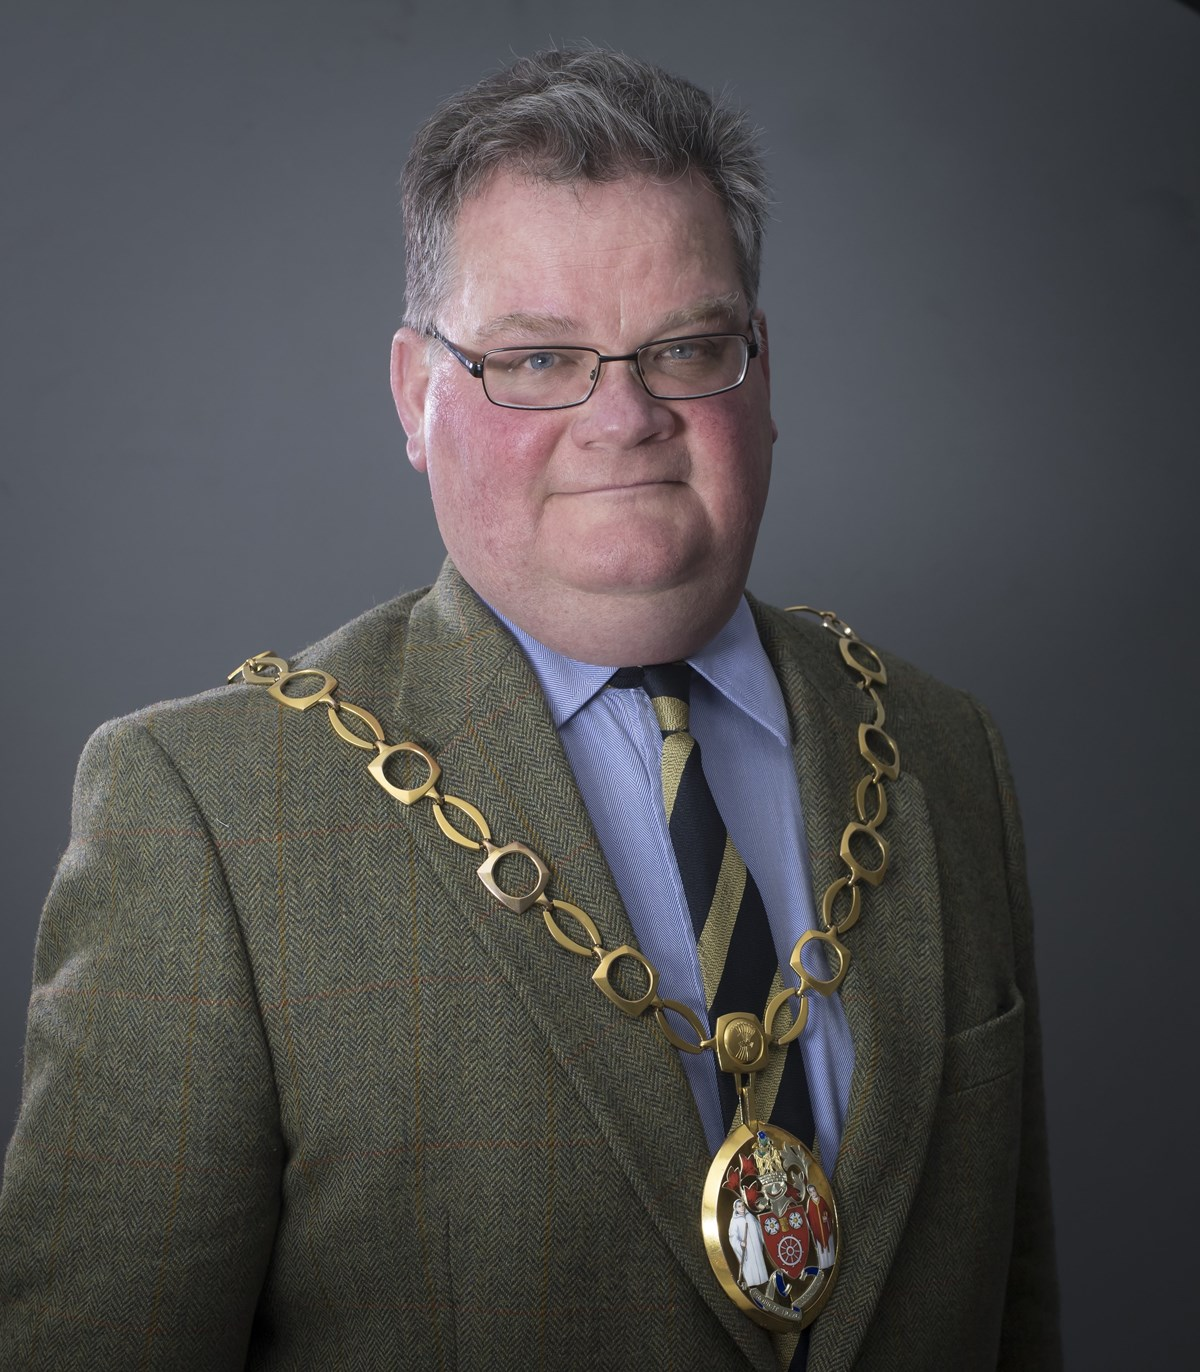 Cllr Michael Cleary, Chairman of the Council, with chain of office